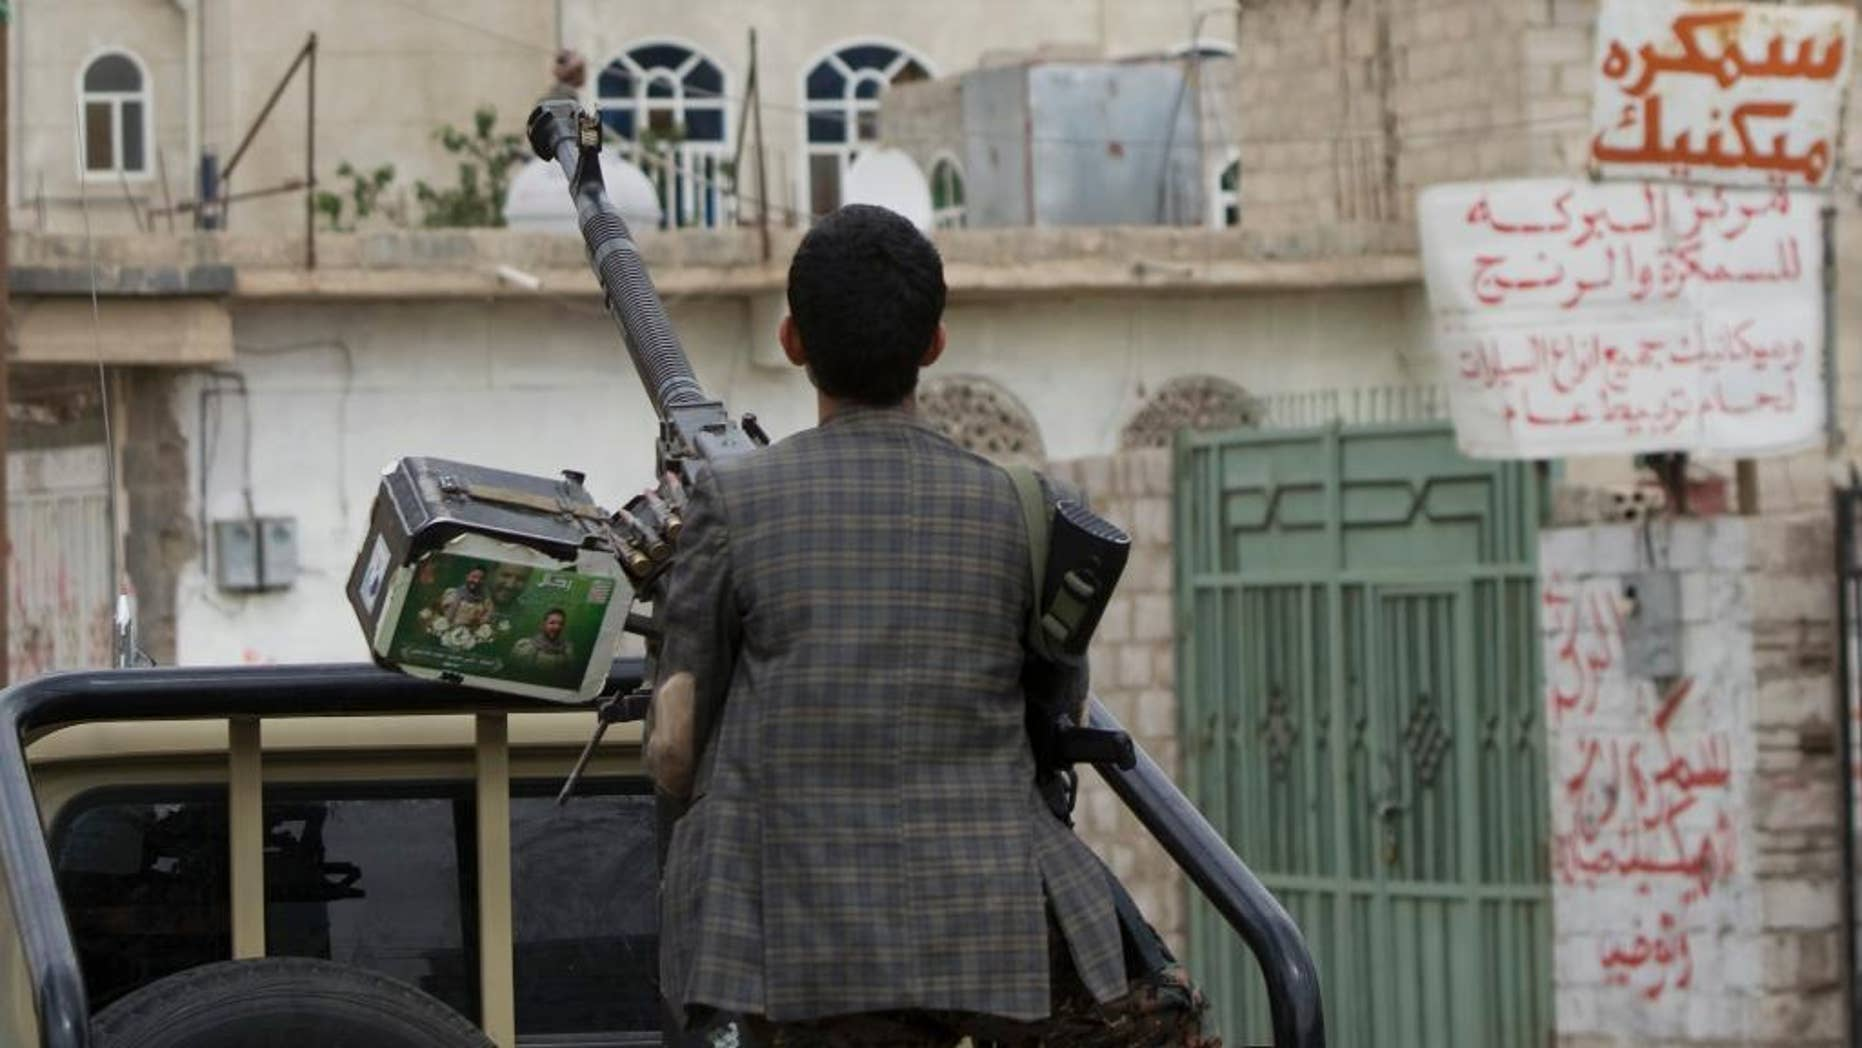 A Shiite fighter known as a Houthi holds a weapon as he looks at smoke rising from a building after a Saudi-led airstrike on a street in Sanaa, Yemen, Wednesday, April 8, 2015. Iran dispatched a naval destroyer and another vessel Wednesday to waters near Yemen as the United States quickened weapons supply to the Saudi-led coalition striking rebels there, underlining how foreign powers are deepening their involvement in the conflict. (AP Photo/Hani Mohammed)